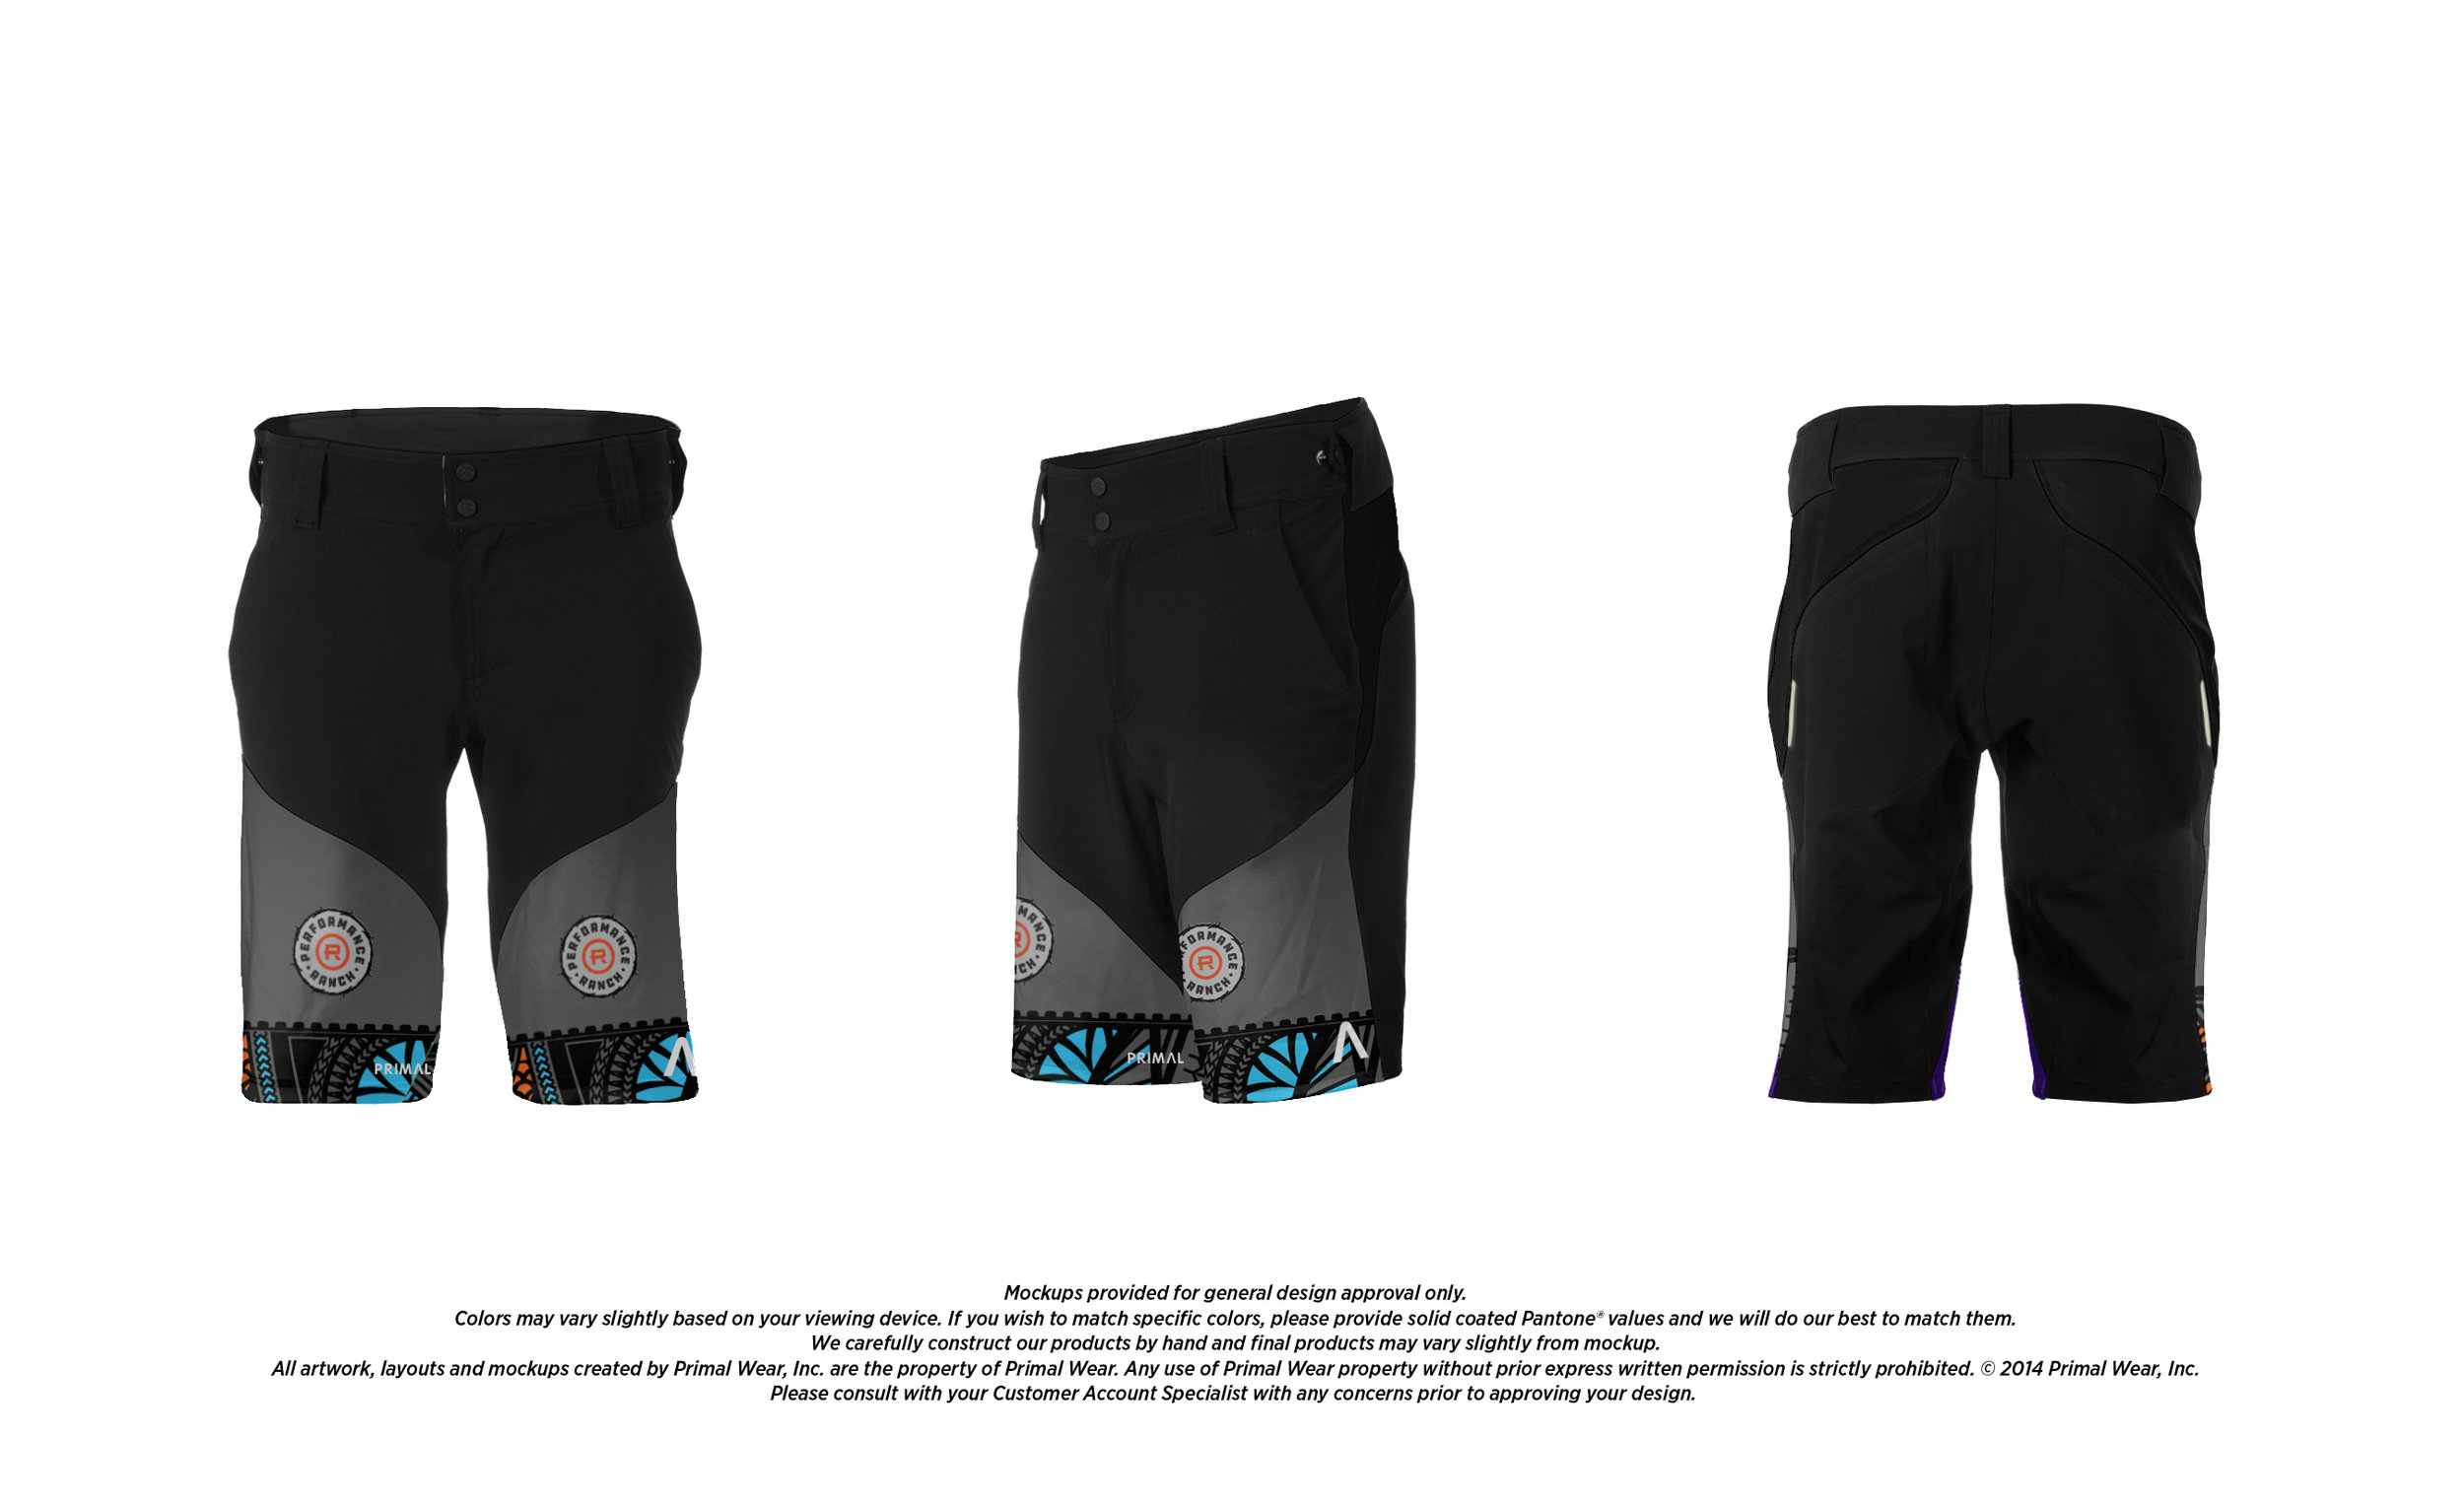 MTB Shorts   Click Here  to Pre-Order - $105